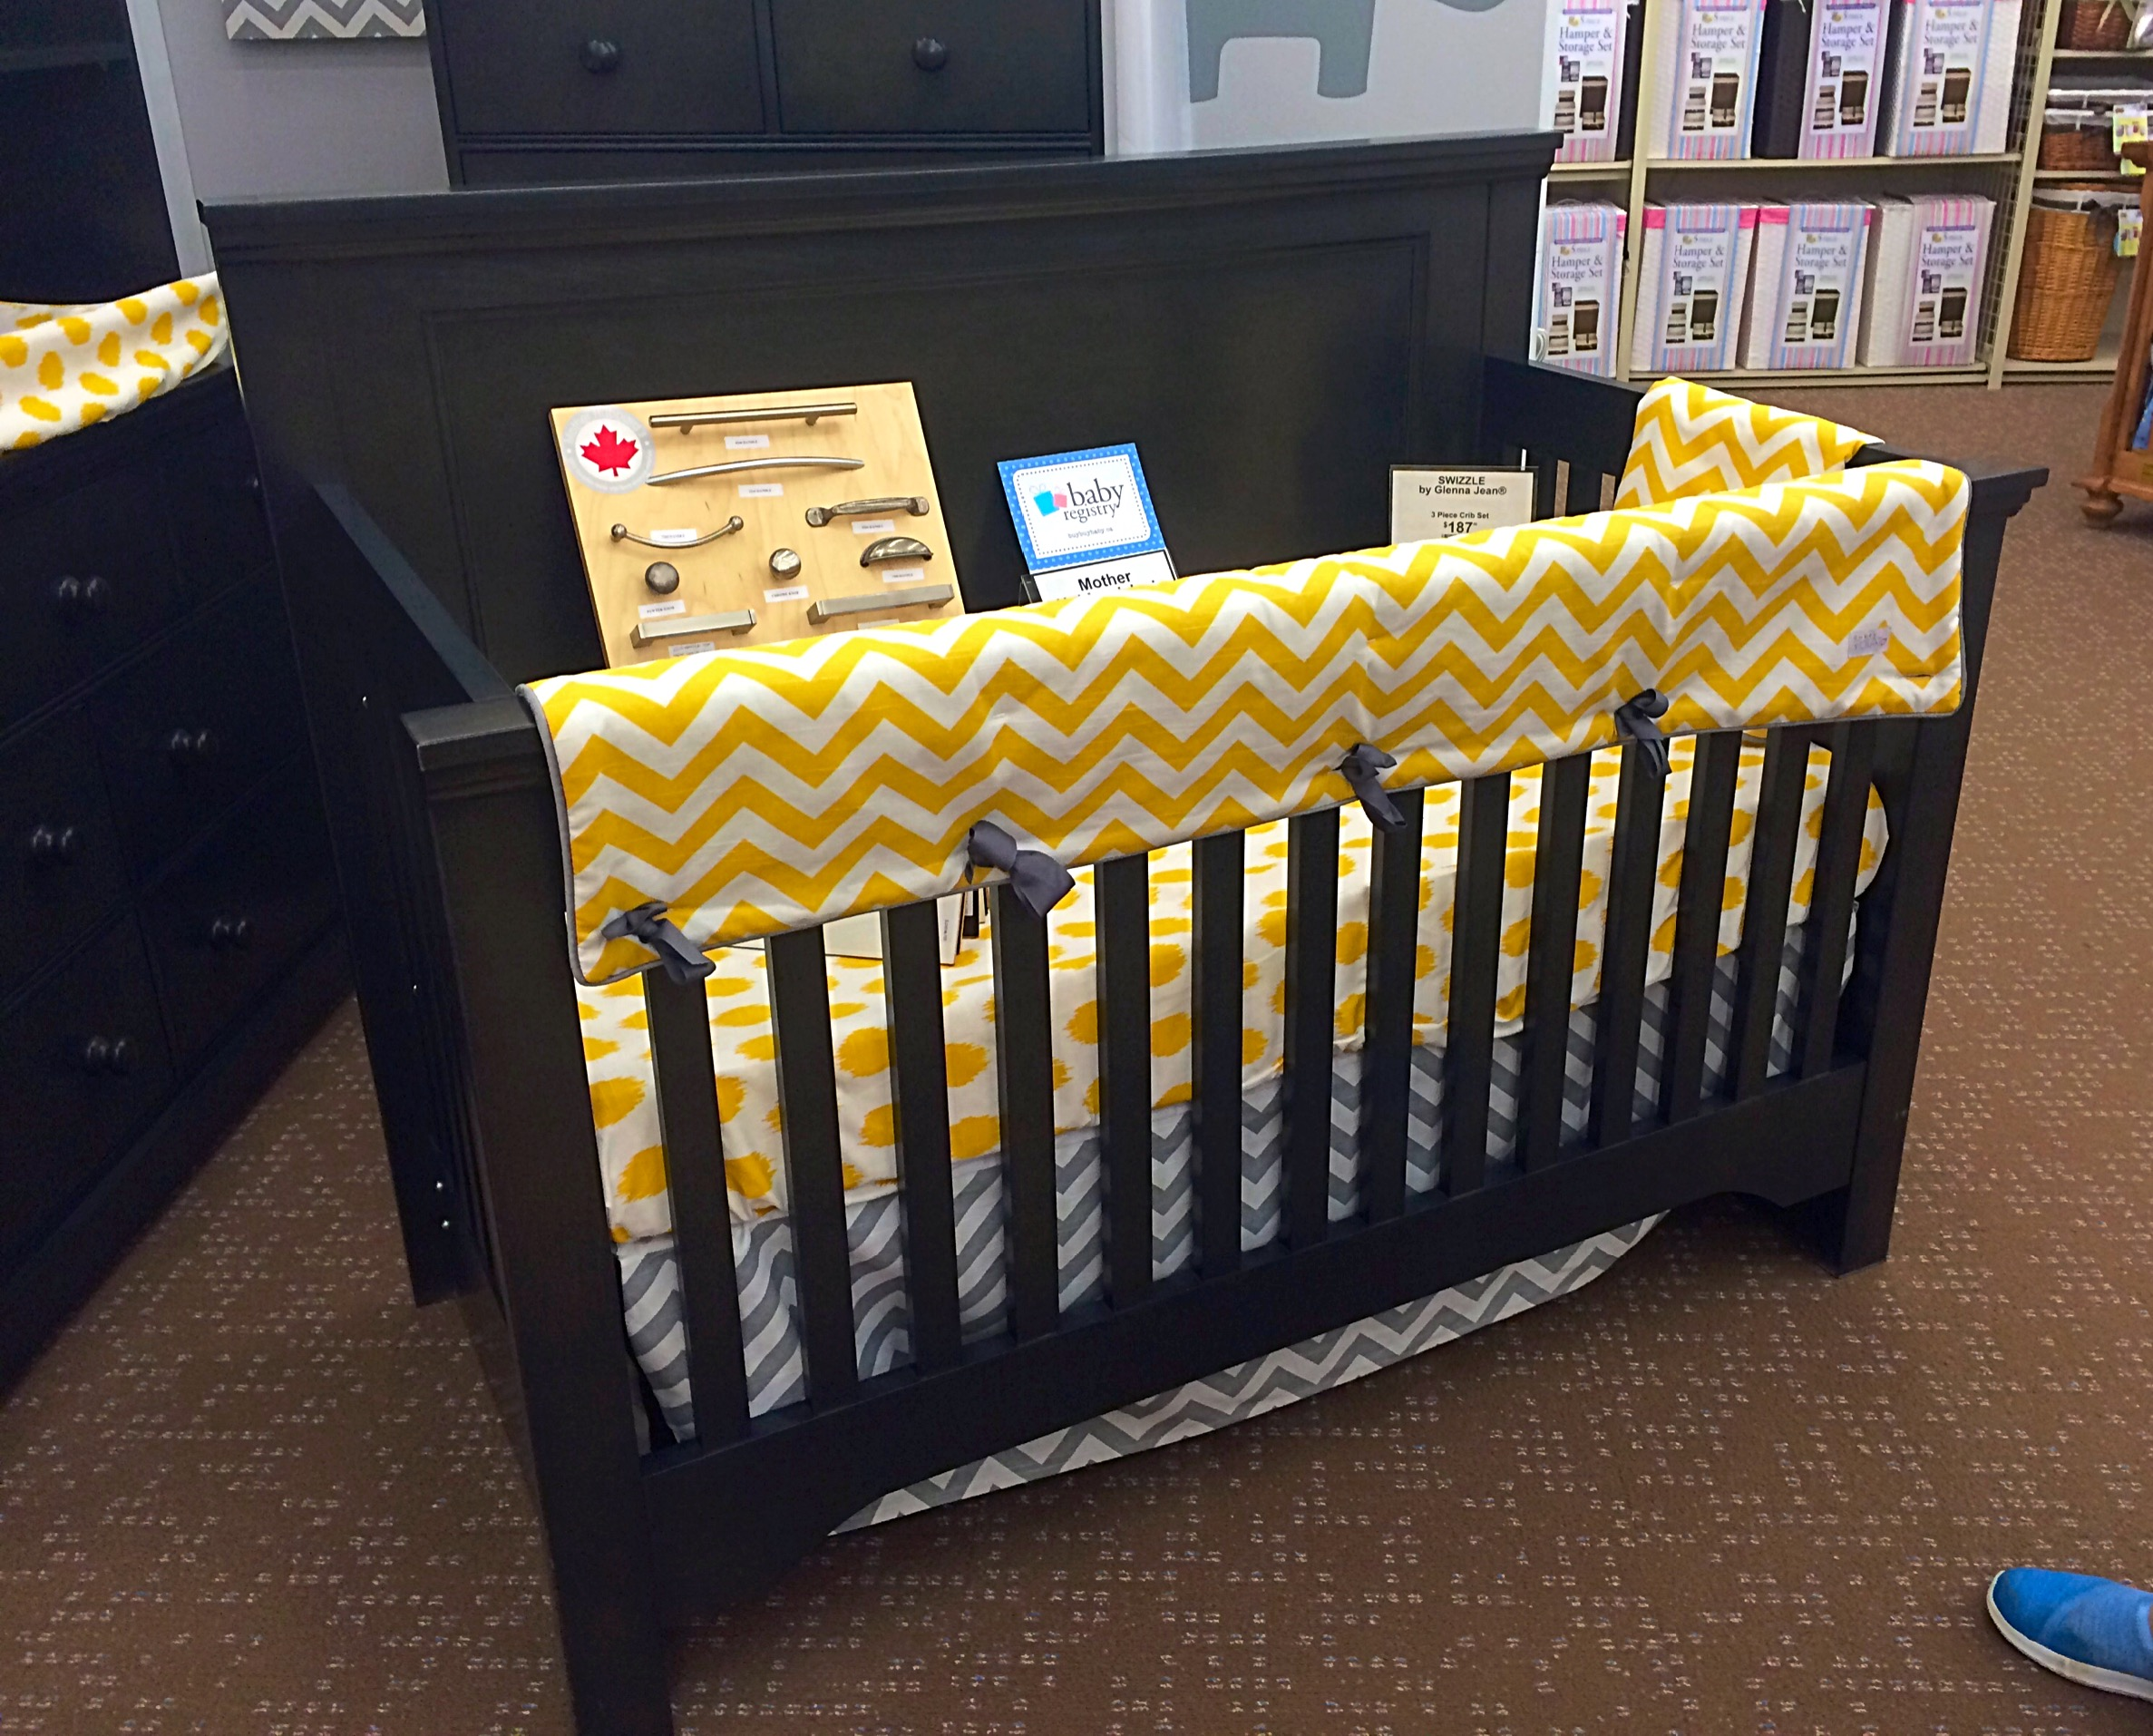 Baby cribs buy buy baby - I Don T Know About You But I Love Walking Through Nursery Layouts And Seeing The Current Trends For Cribs Bedding Furniture And Colour Palettes